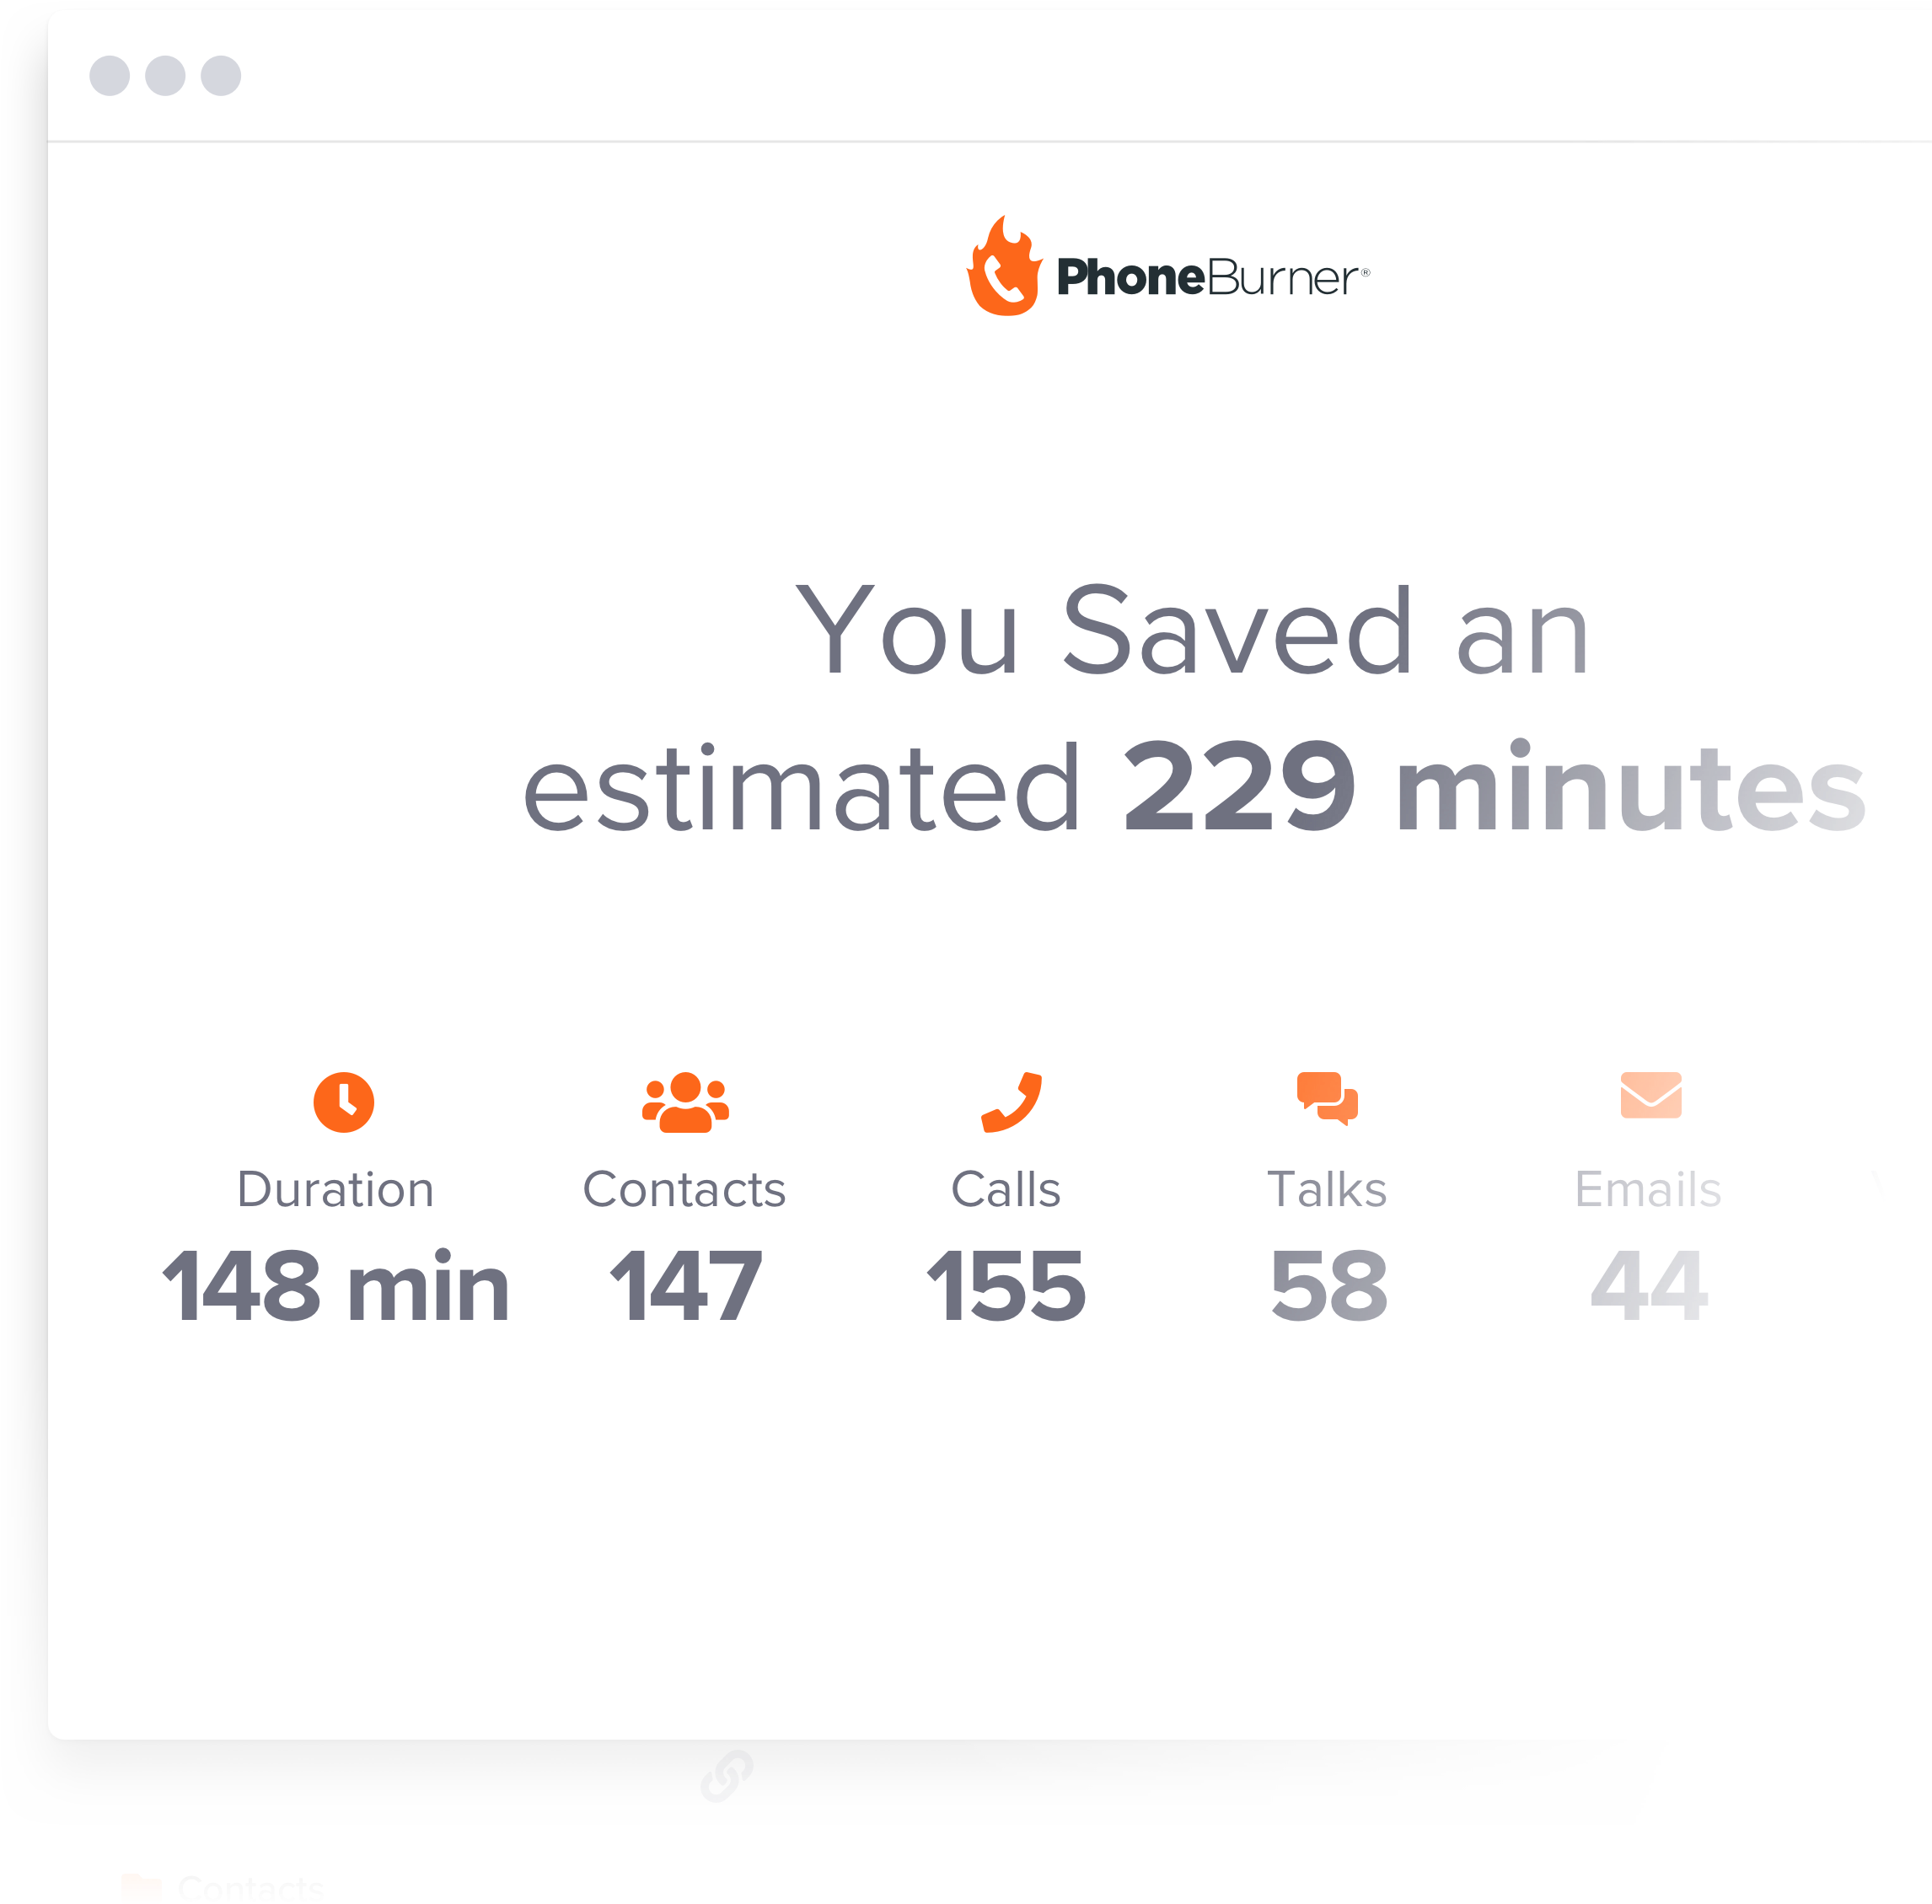 PhoneBurner saves you time and automates tedious tasks. Have up to 4x more live conversations every dial session.